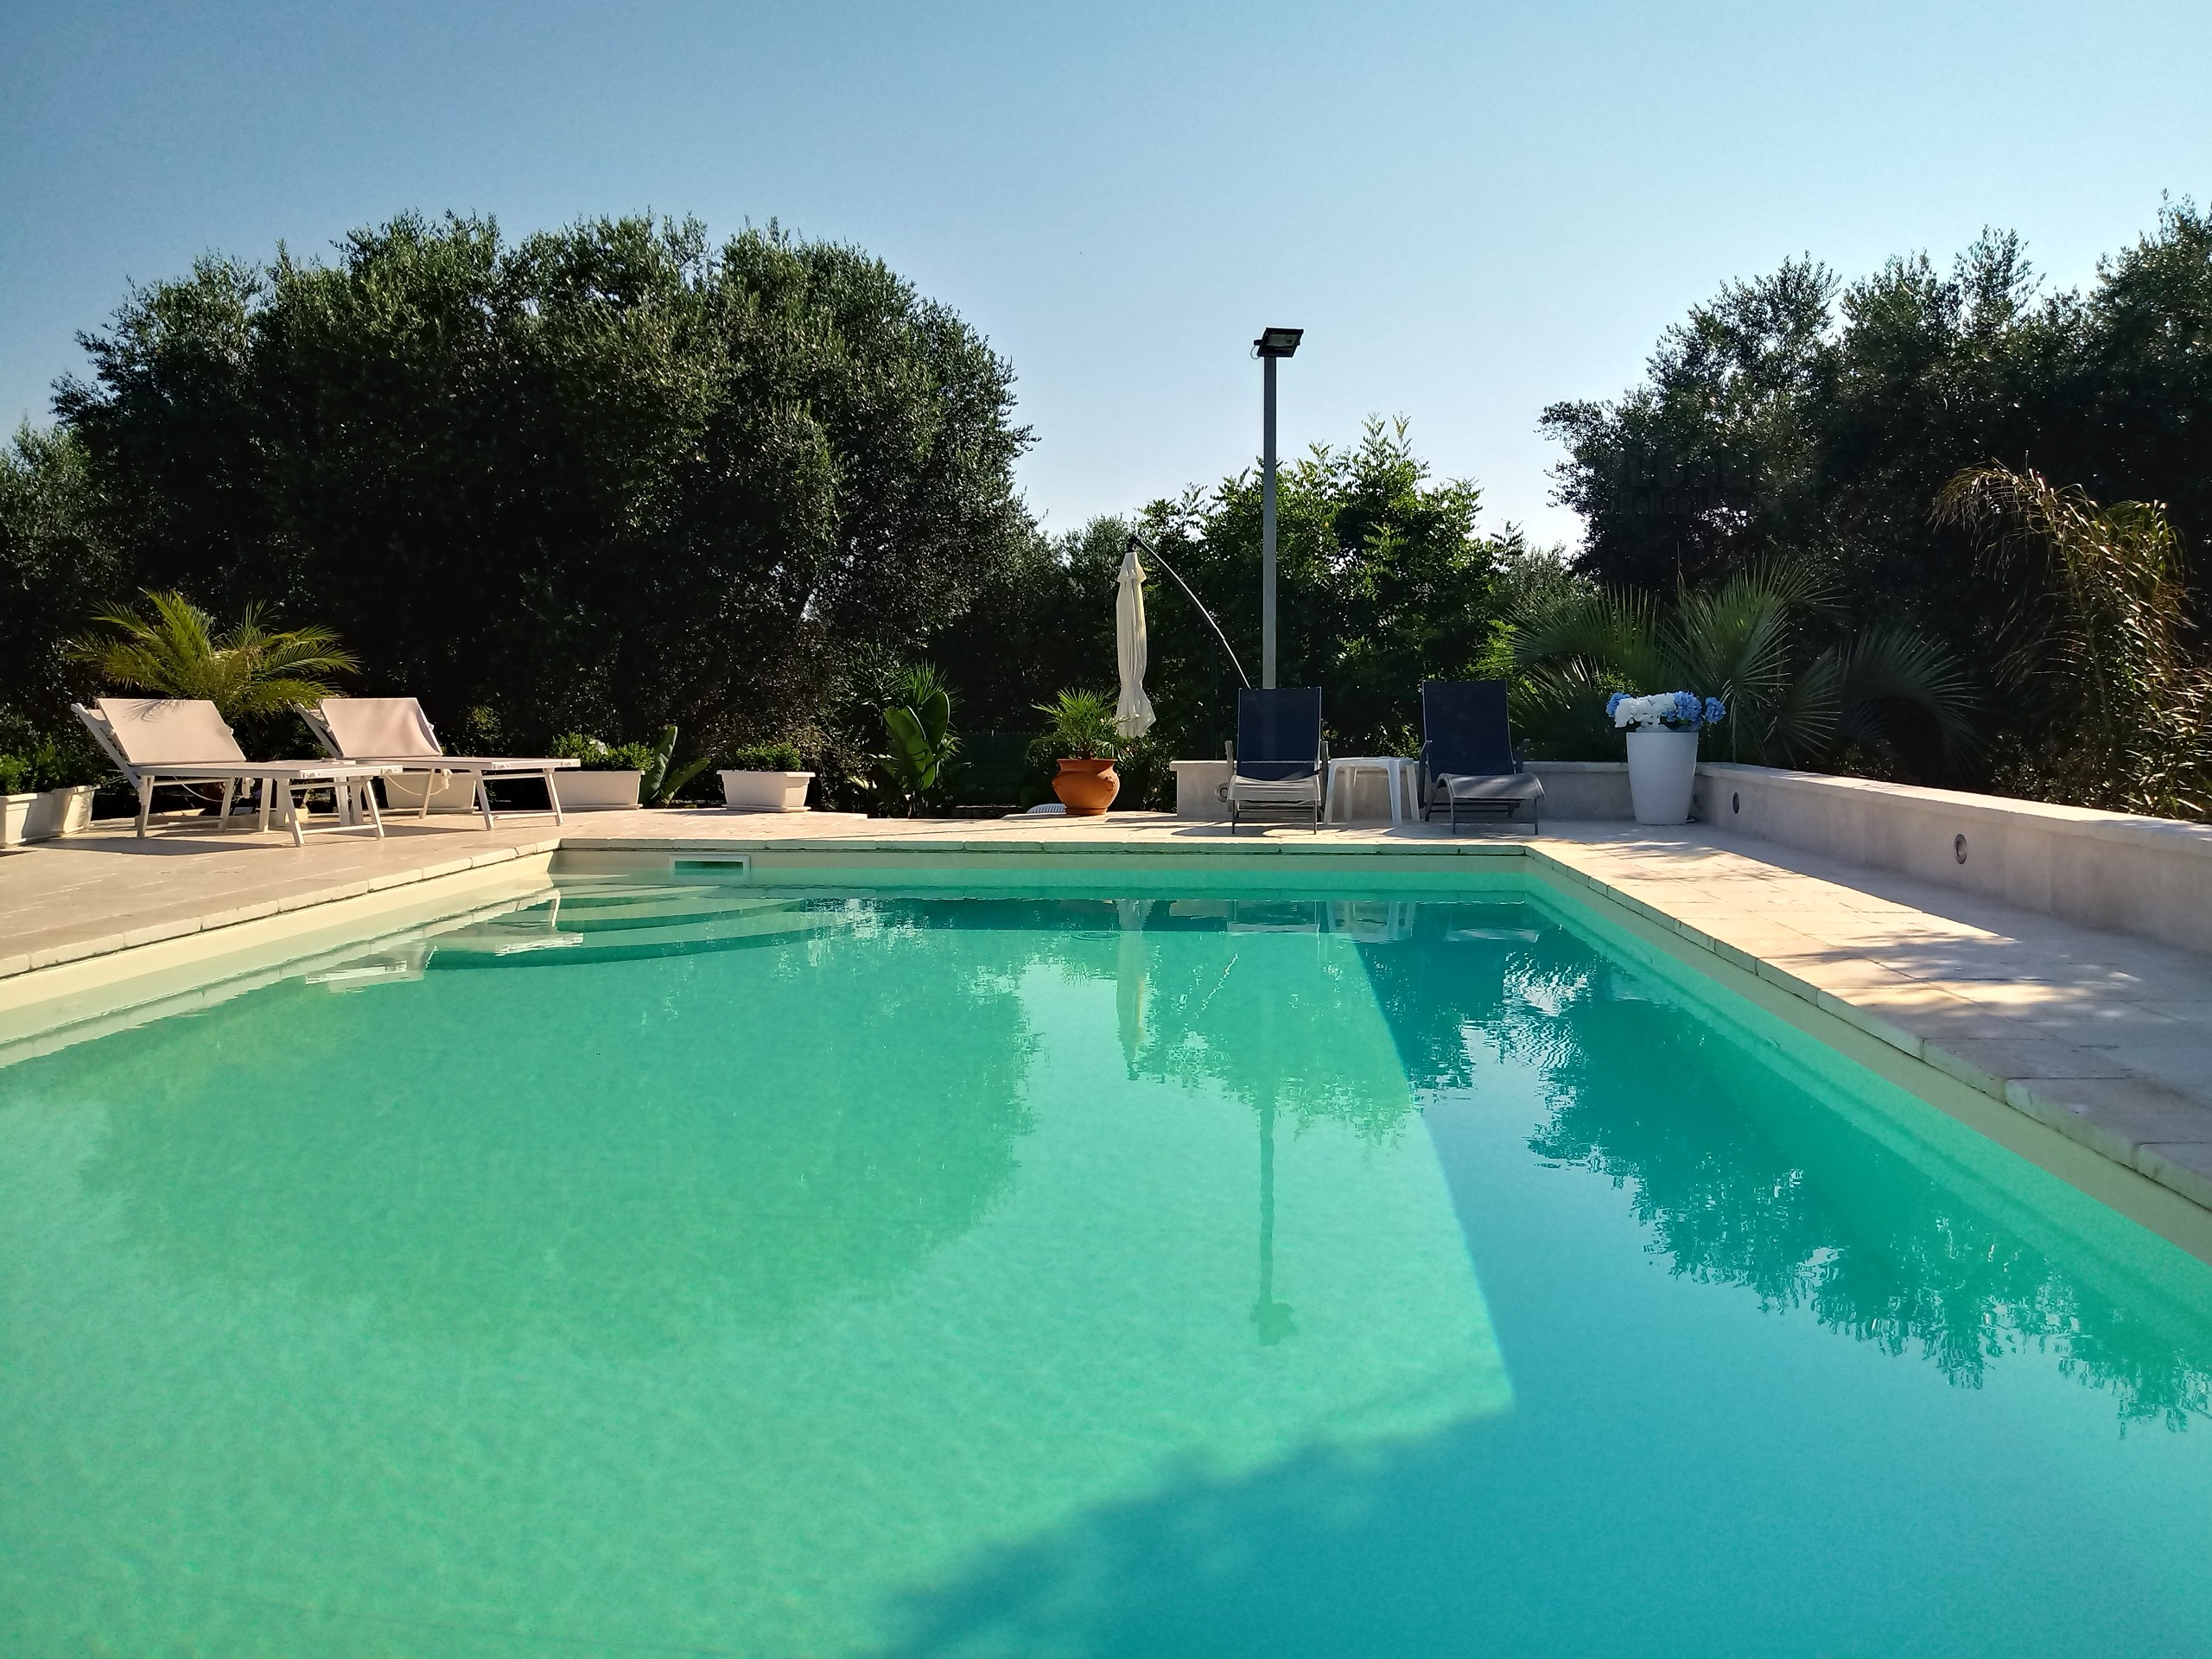 Cavaliere lovely pool home photo 22517541